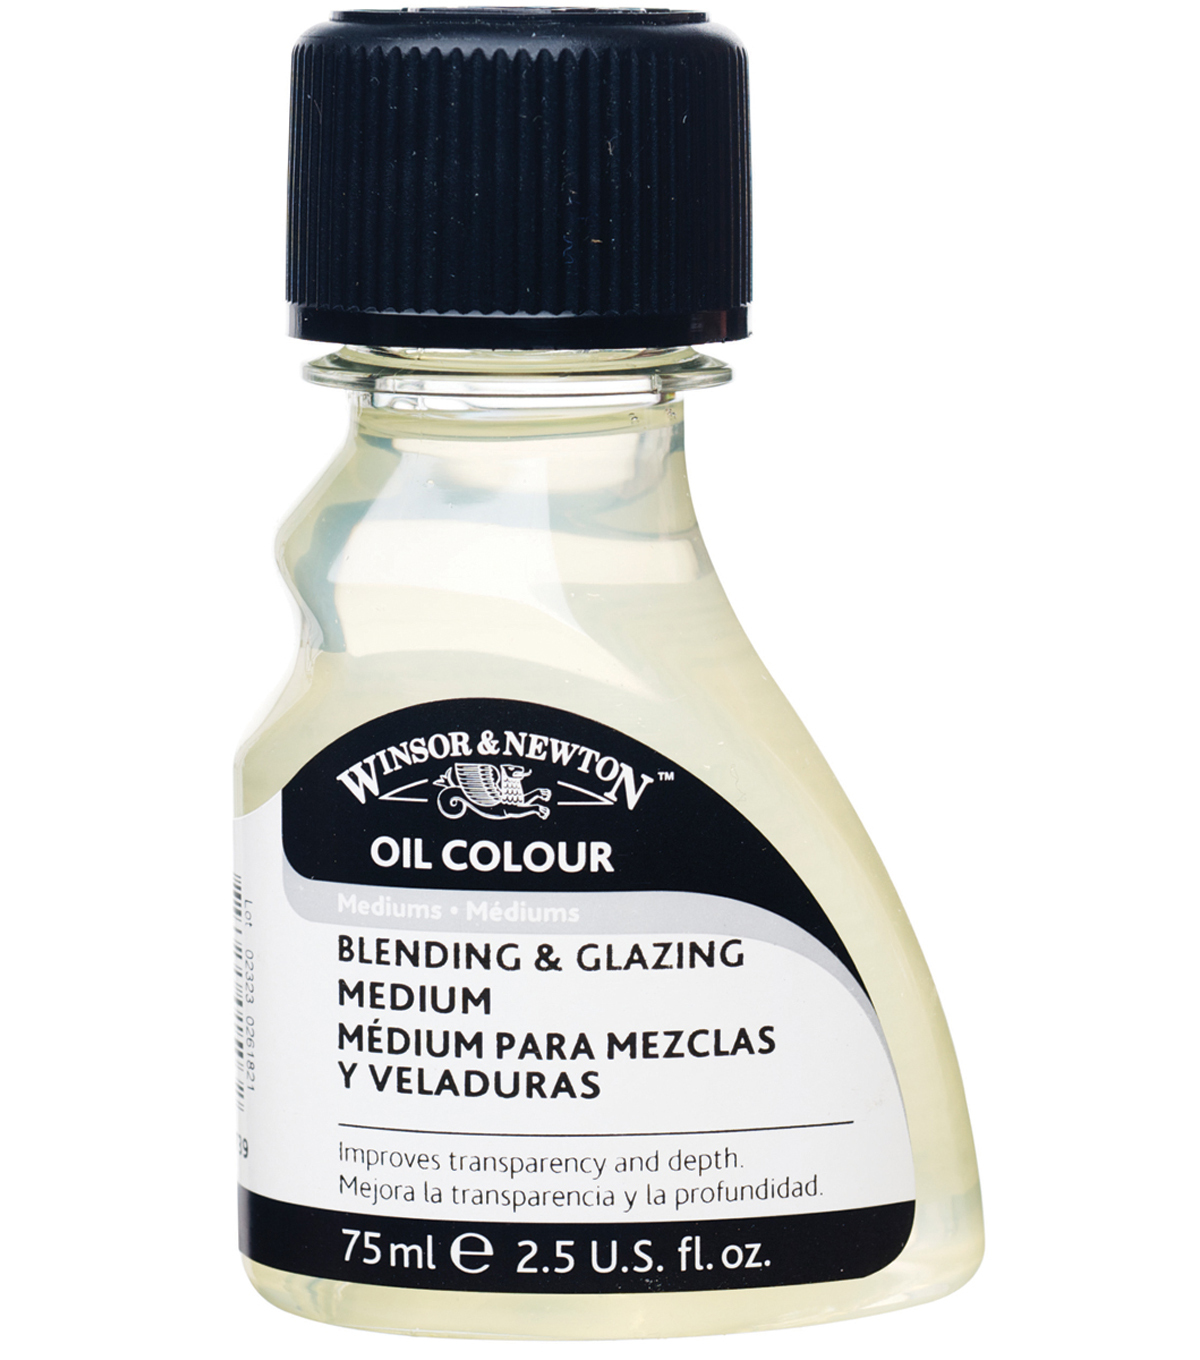 Winsor & Newton Oil Blending & Glazing Medium-75ml